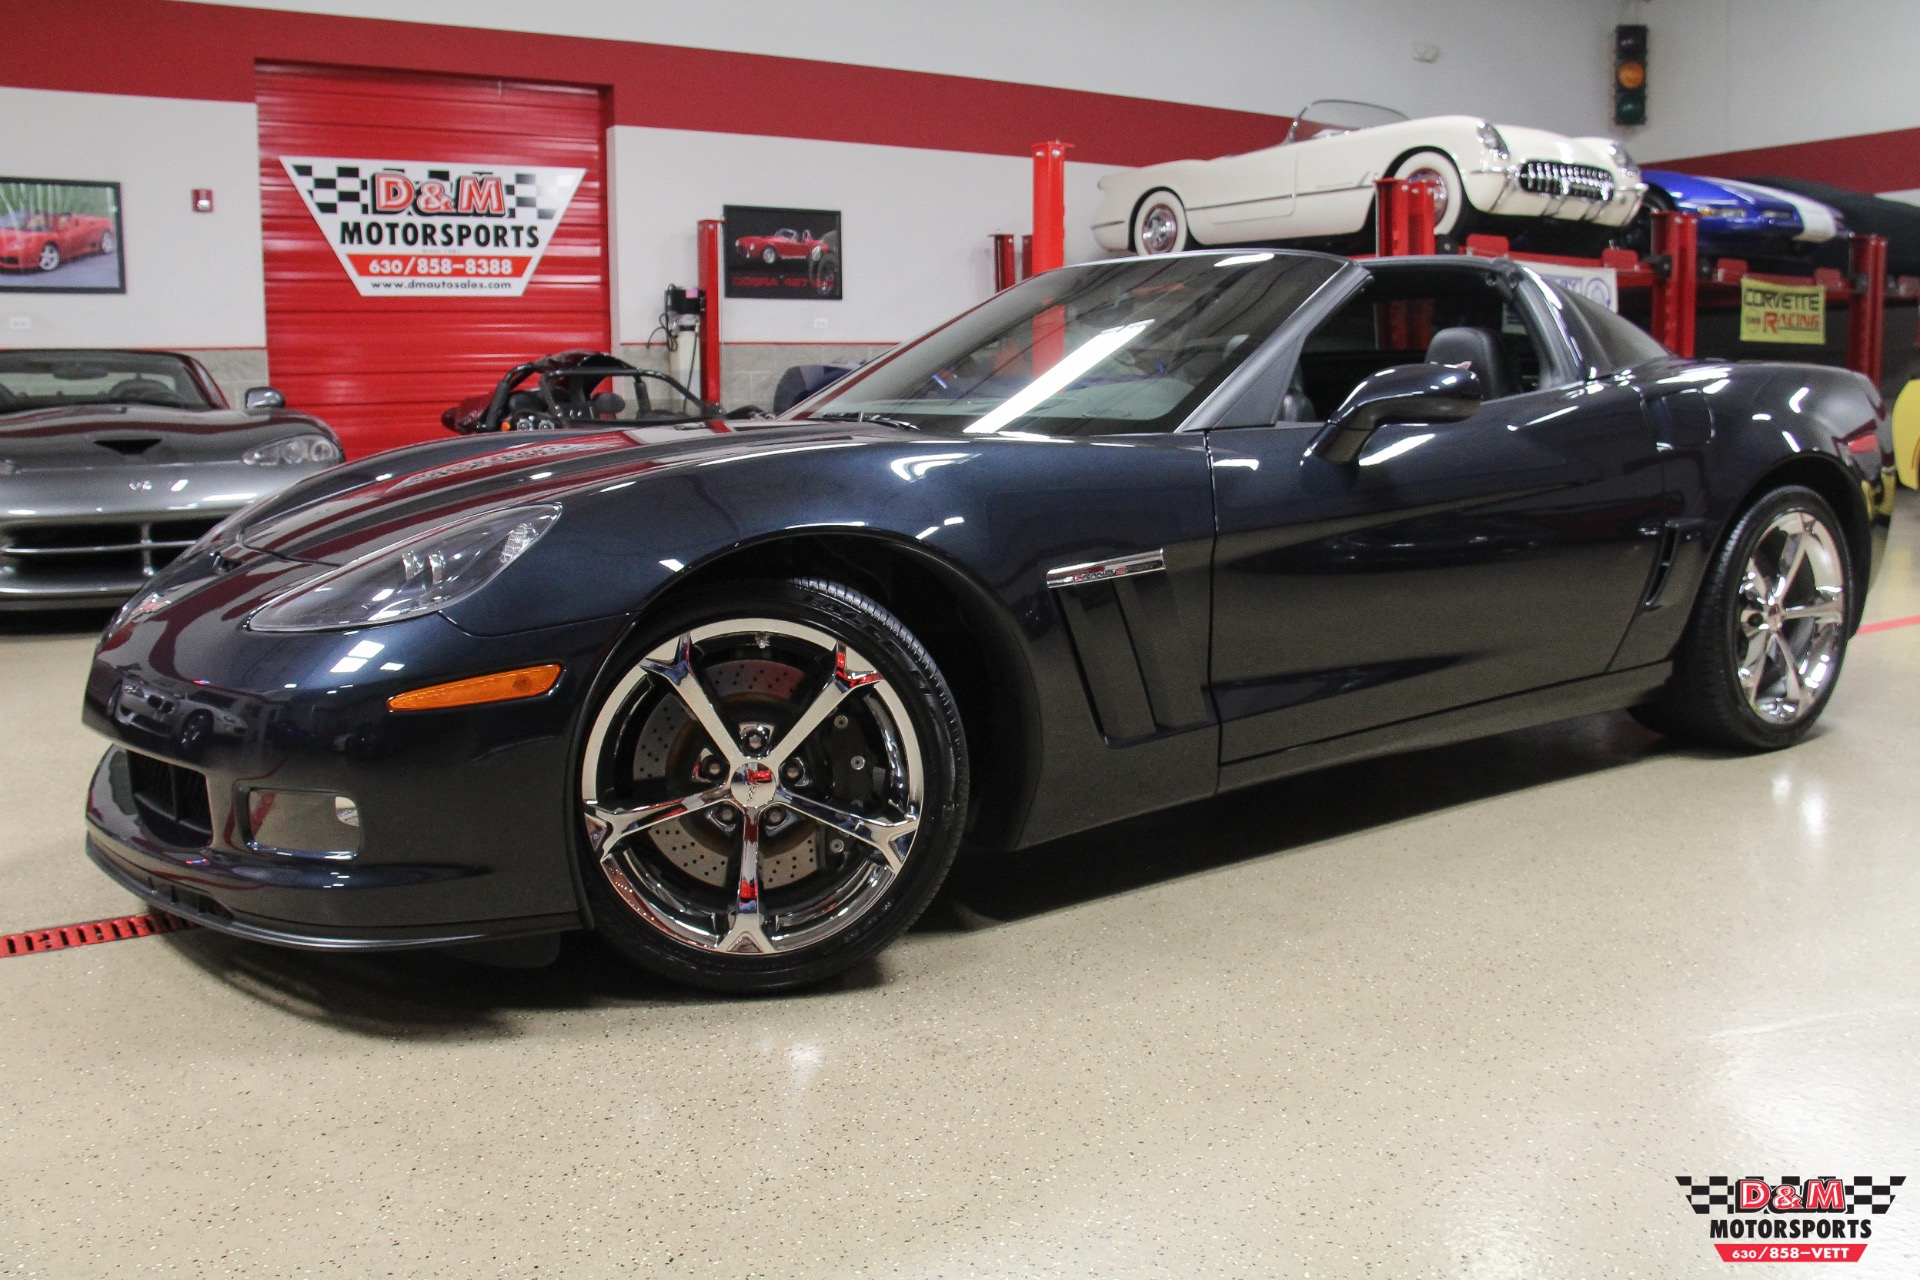 2013 chevrolet corvette grand sport coupe stock m6443. Black Bedroom Furniture Sets. Home Design Ideas